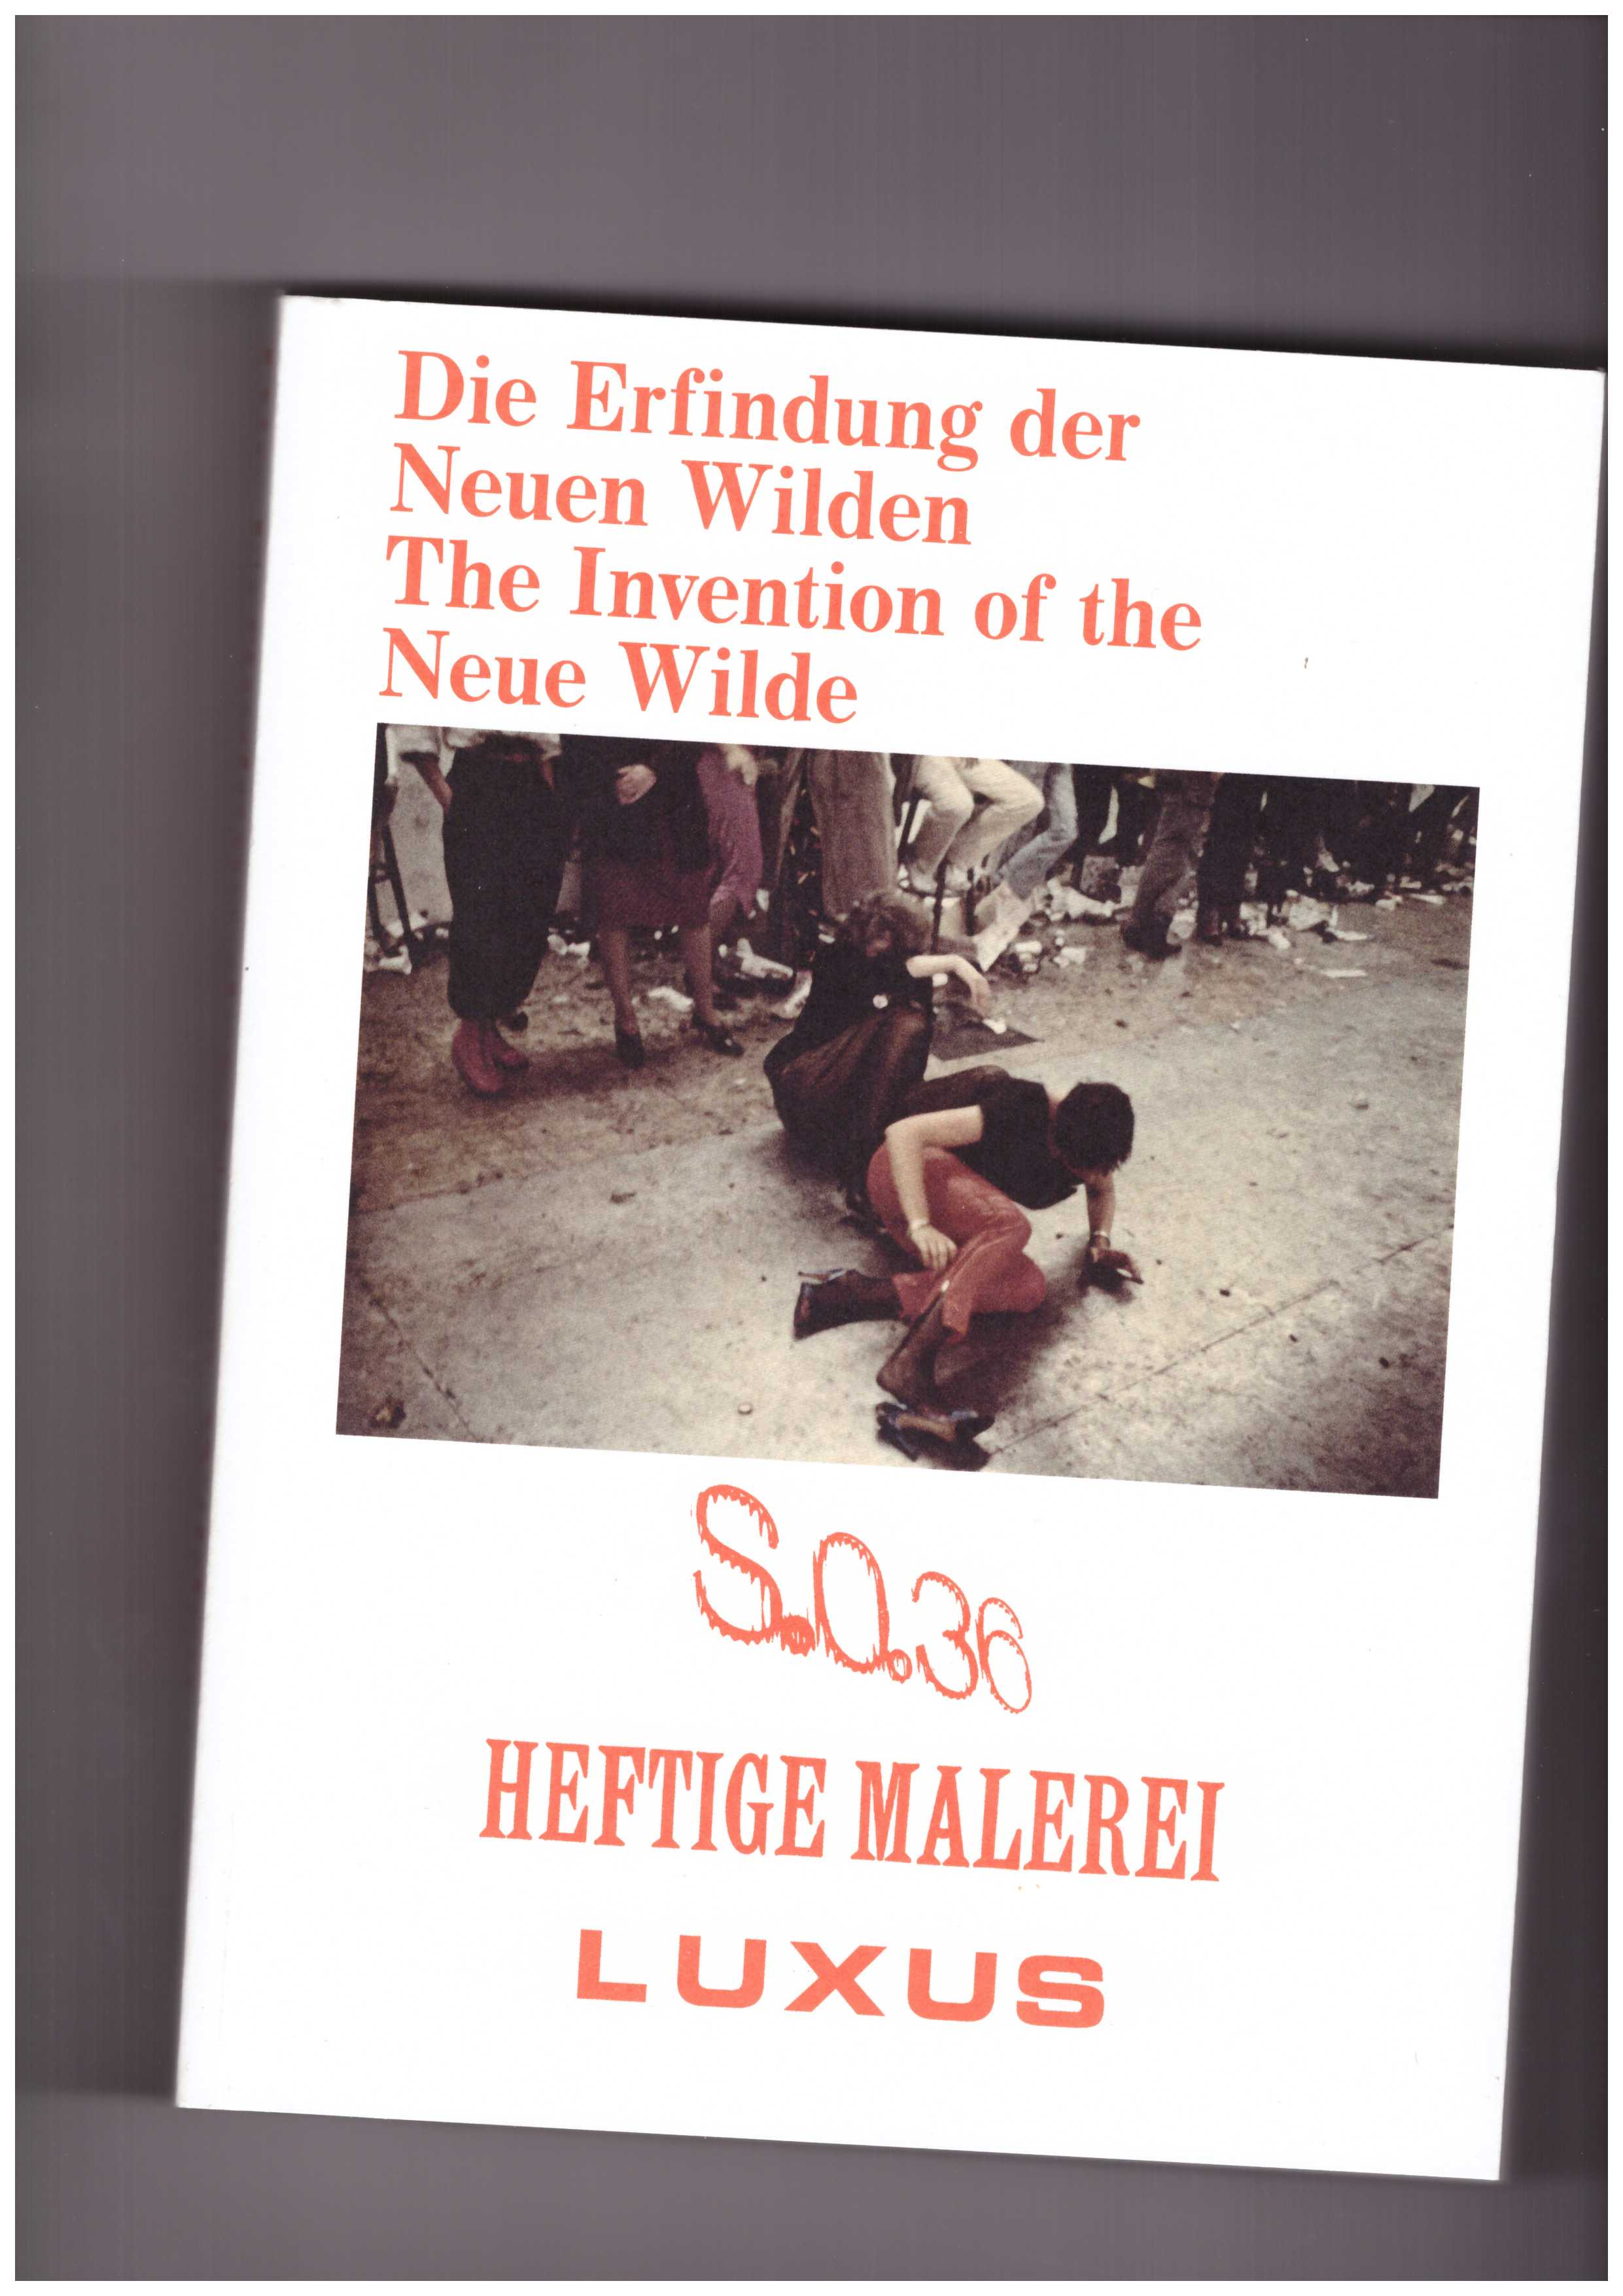 DODENHOFF, Benjamin ; HEINLEIN, Ramona  - The Invention of the Neue Wilde. Painting and Subculture Around 1980